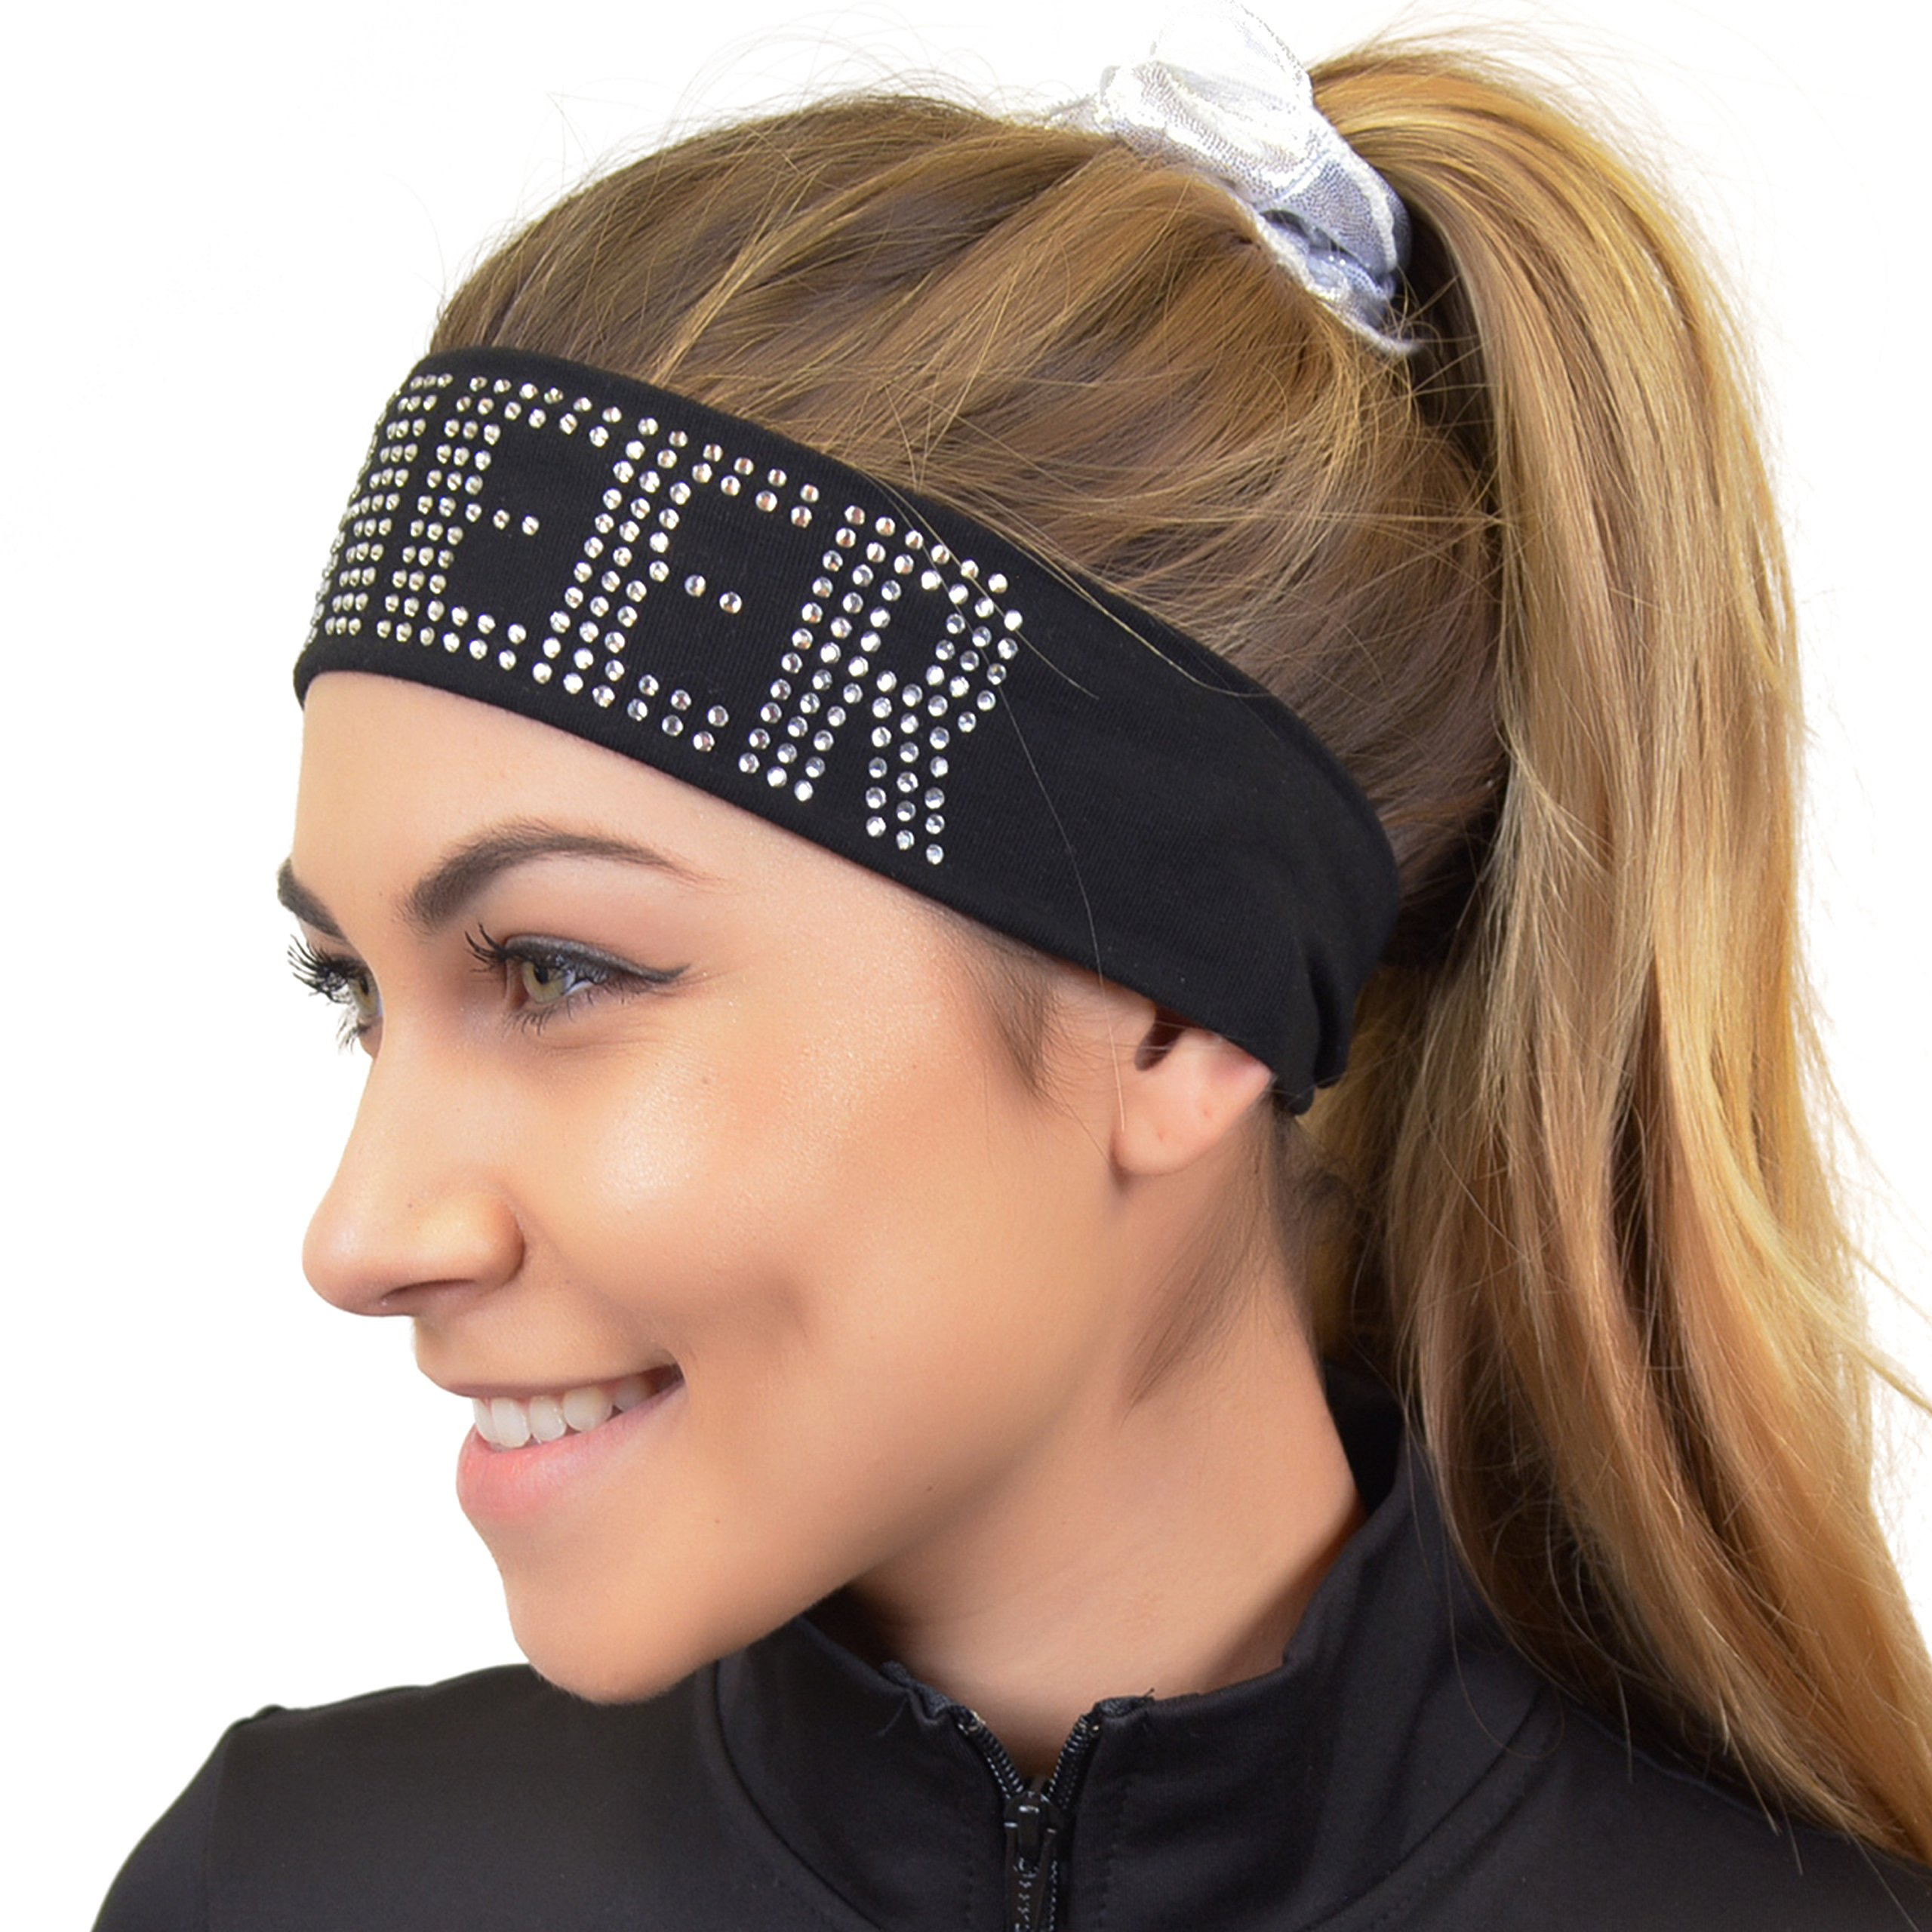 Stretch Is Comfort Girl's CHEER Rhinestone Wide Cotton Headband Black by Stretch is Comfort (Image #2)